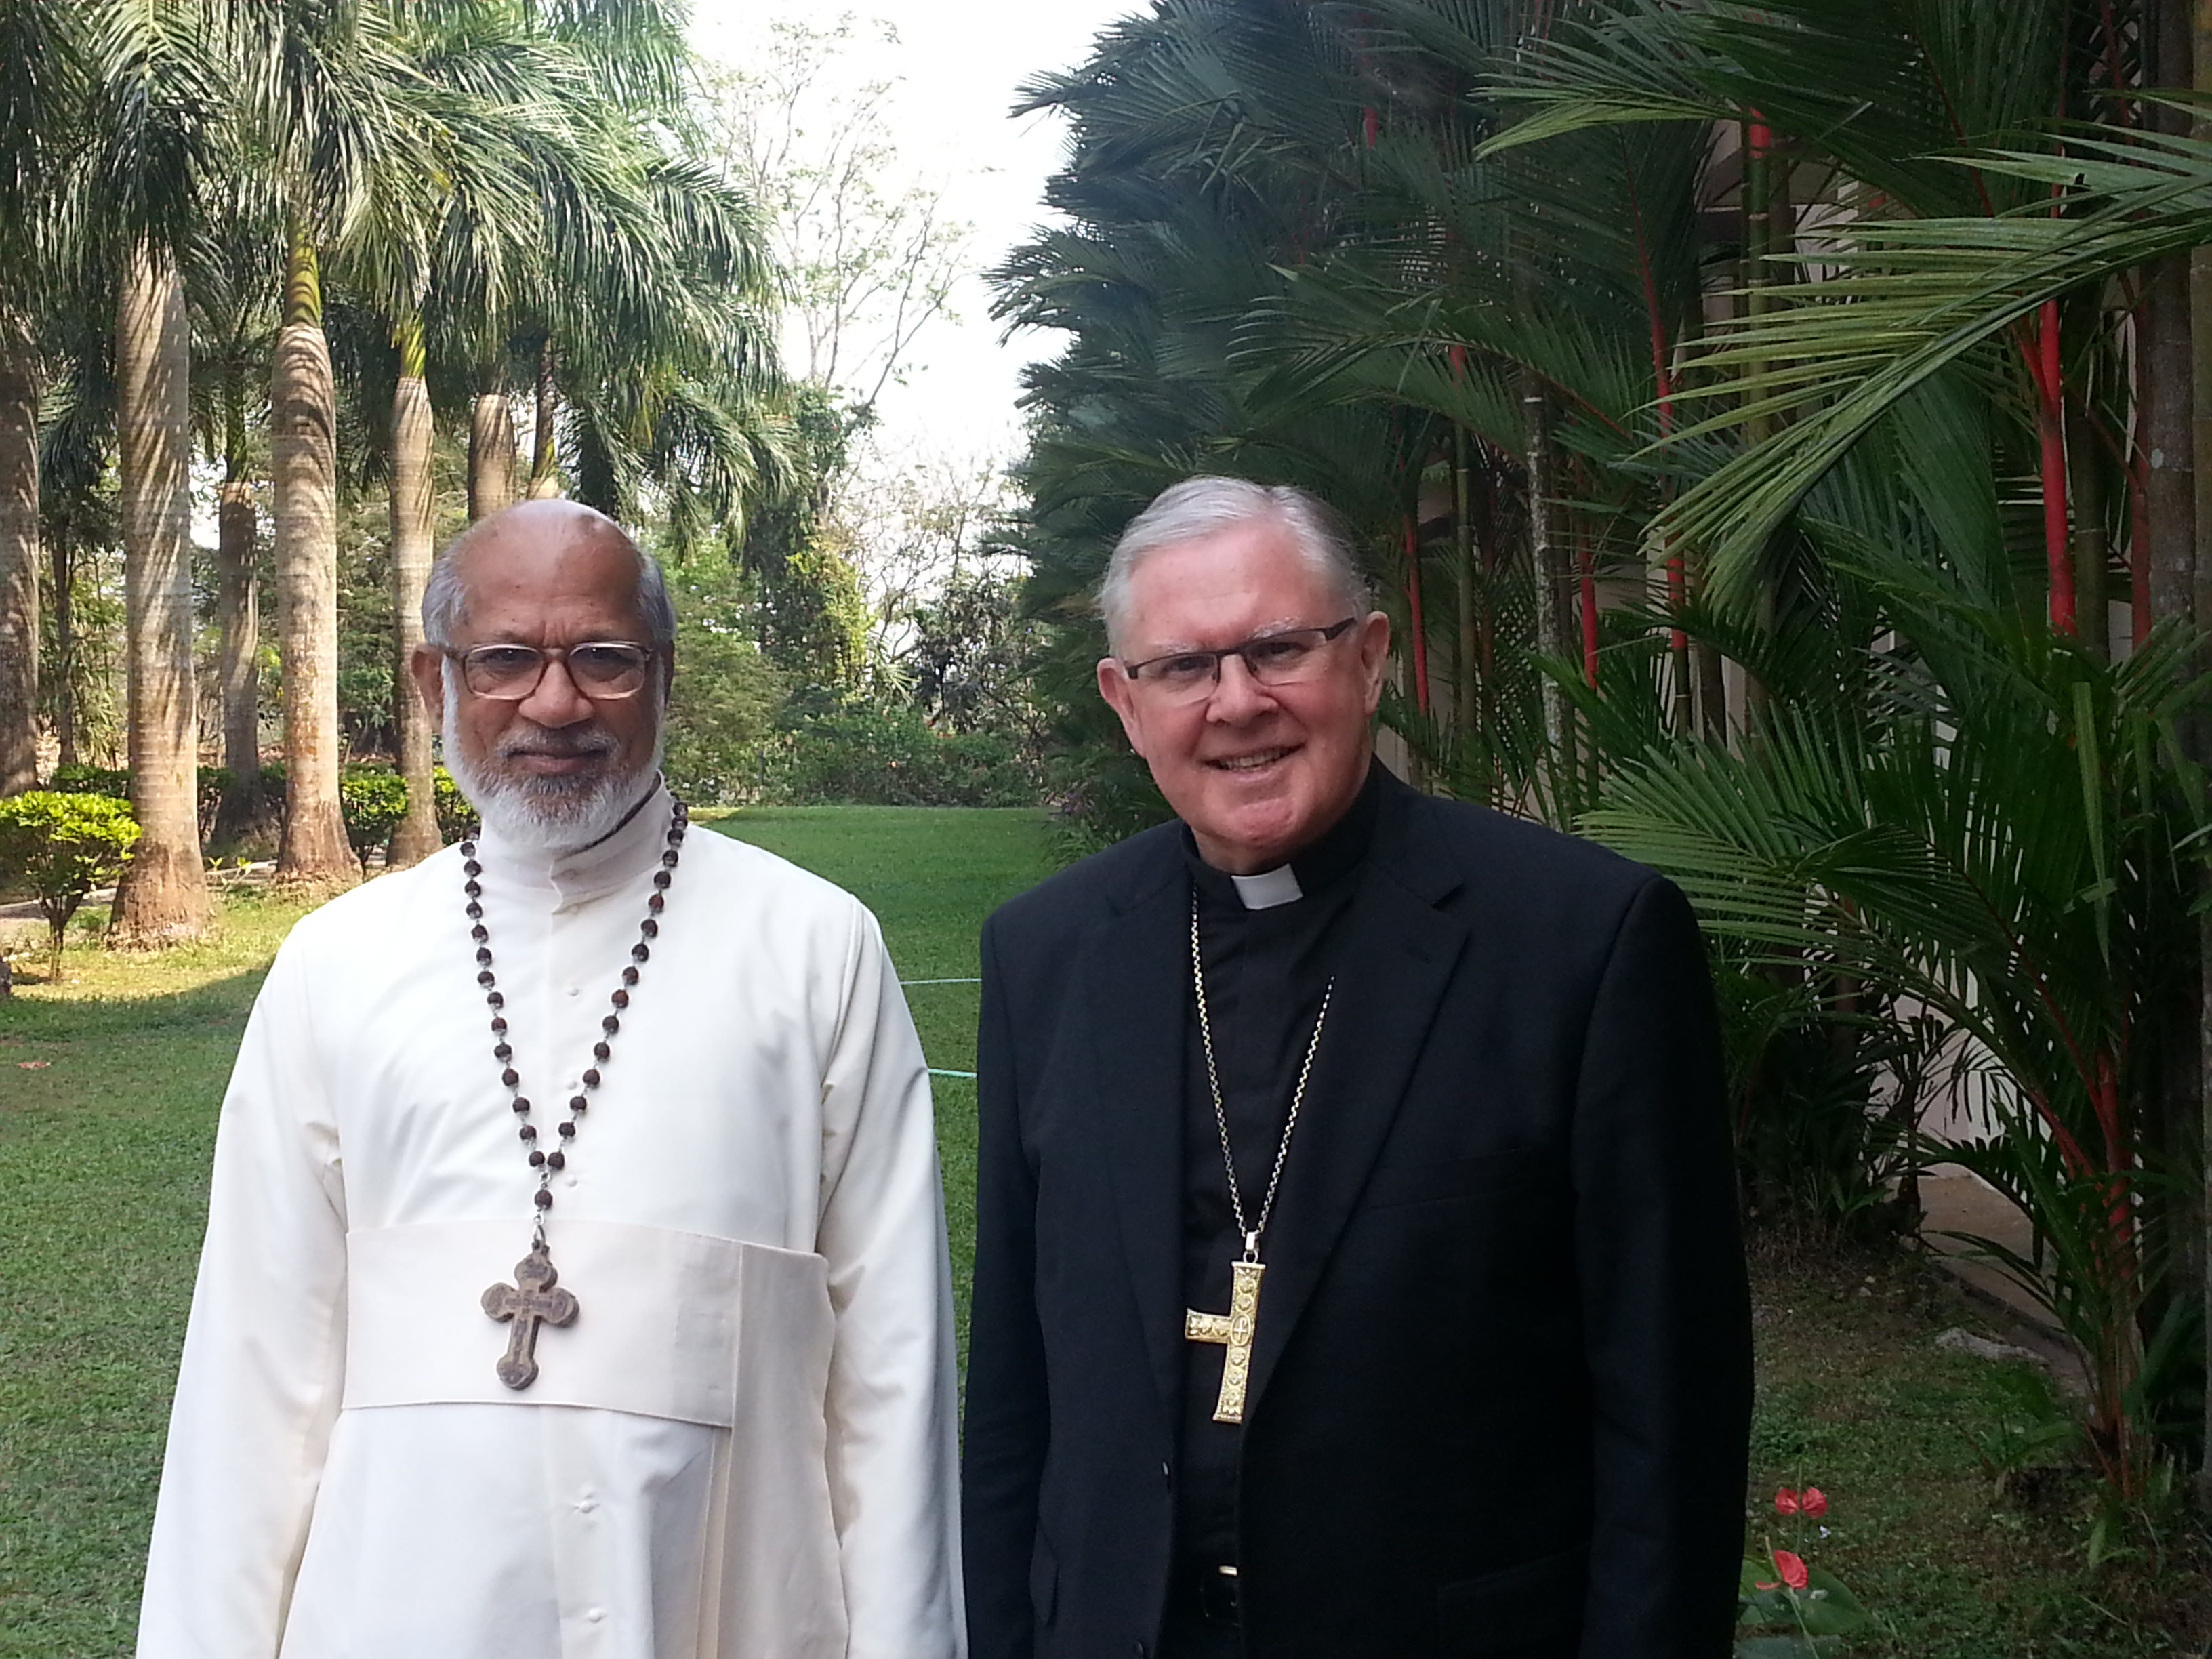 Meeting with Cardinal Mar George Alencherry Major Archbishop of the Syro Malabar Church